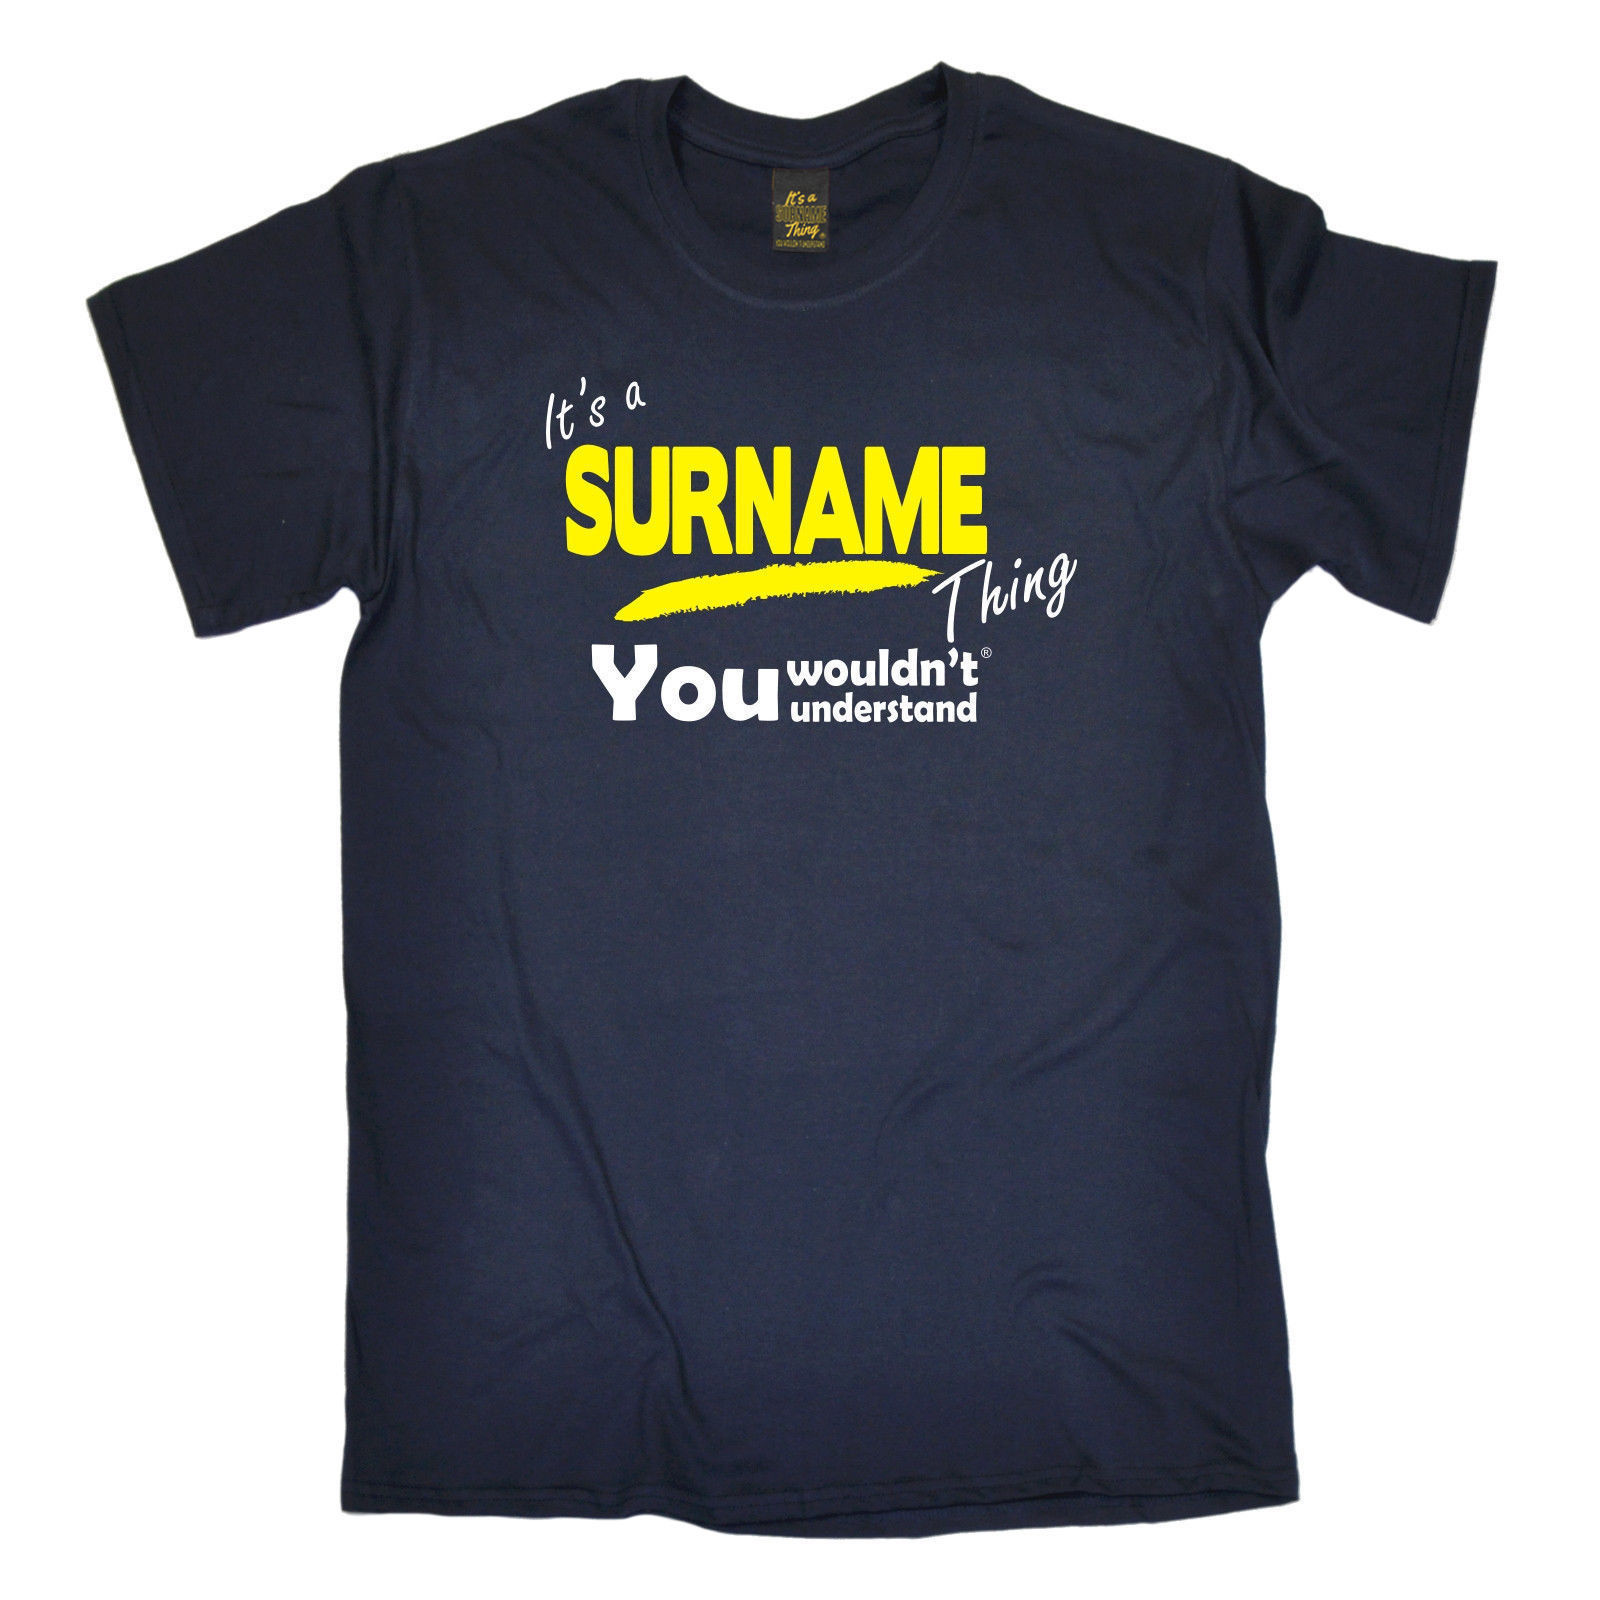 Its A Surname Thing T-SHIRT Husband Grandad Dad Uncle Fathers Day Birthday Gift Summer Tops Tees T Shirt Top Tee Base Shirt